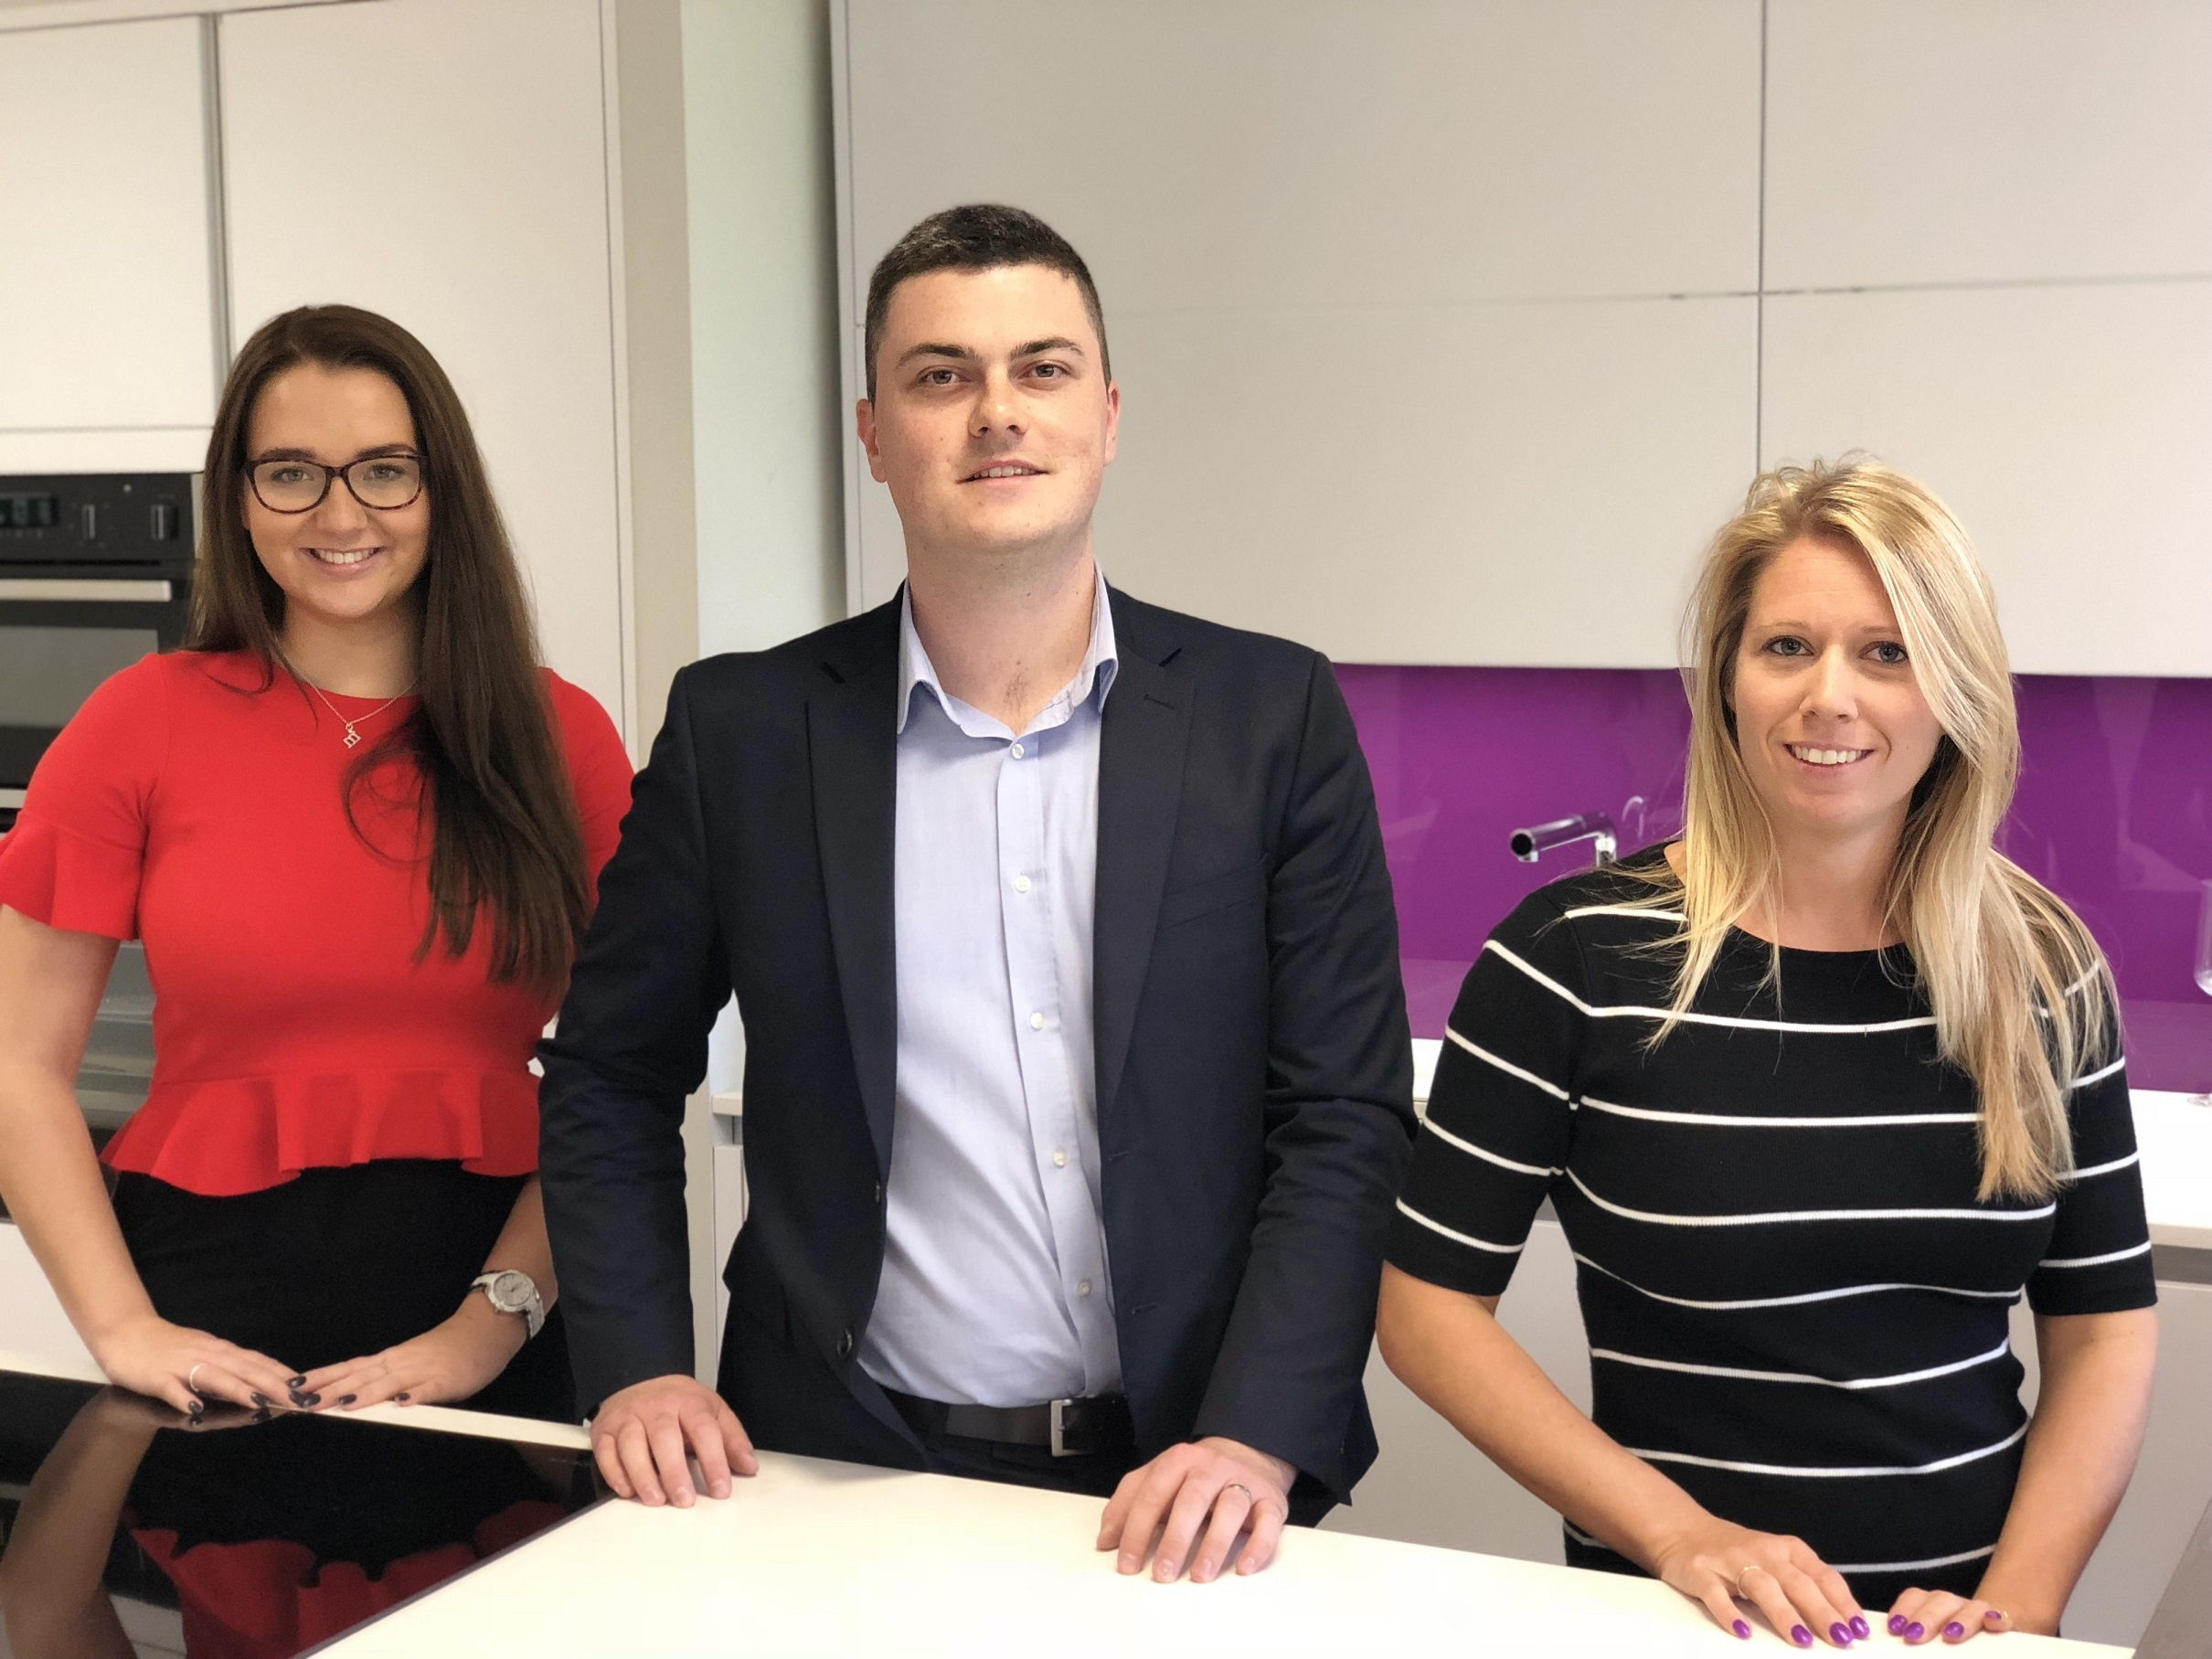 The new team at Elliotts Living Spaces, Ringwood. From left to right, Bryony Downs, Lawrence Morgan and Jemma Collins